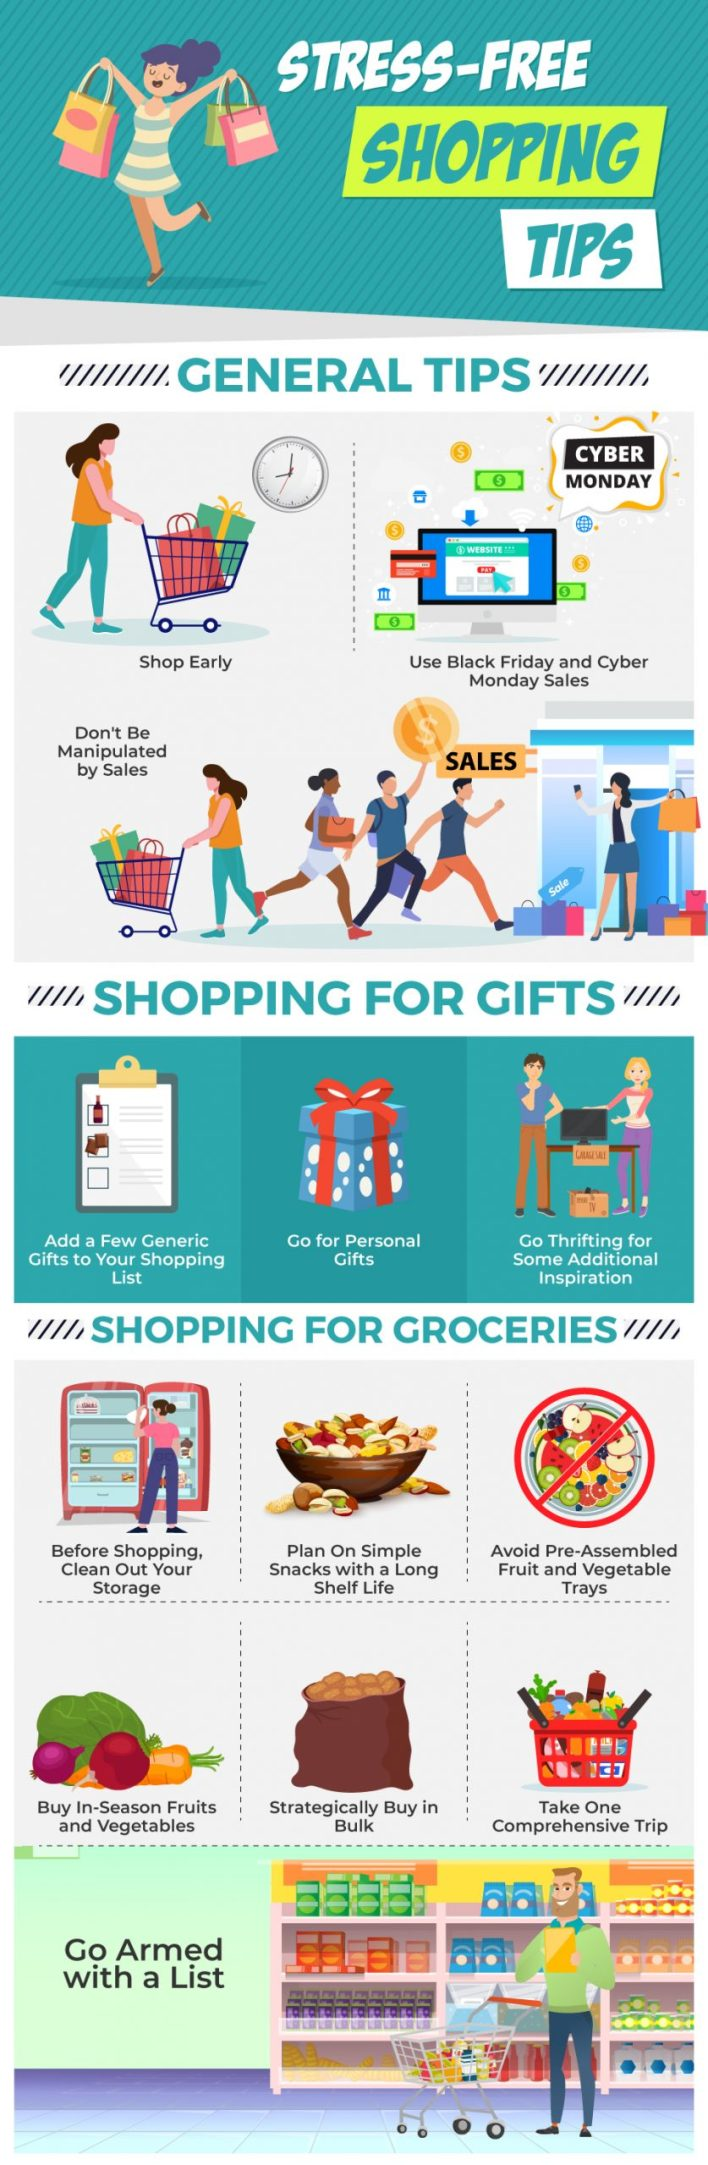 Stress-Free Shopping Tips